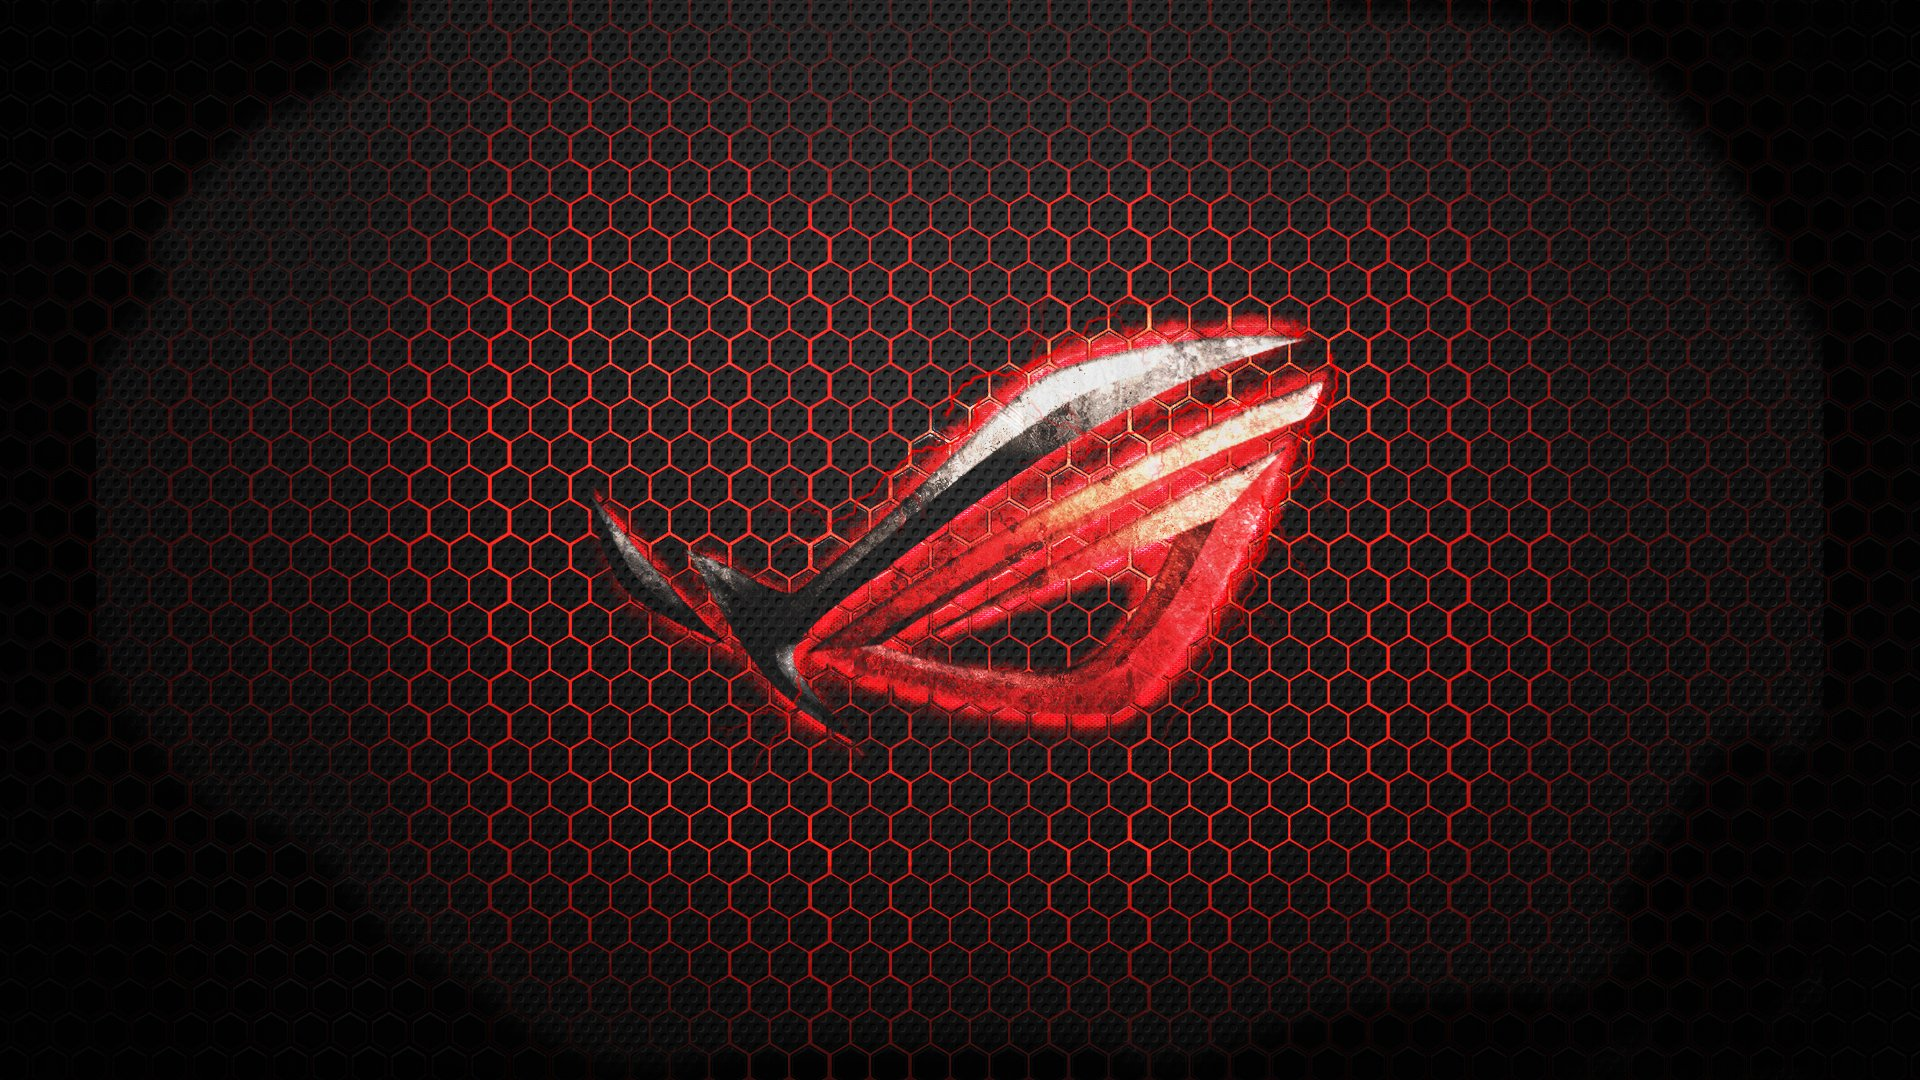 Asus Wallpapers Widescreen: Asus HD Wallpapers, Pictures, Images